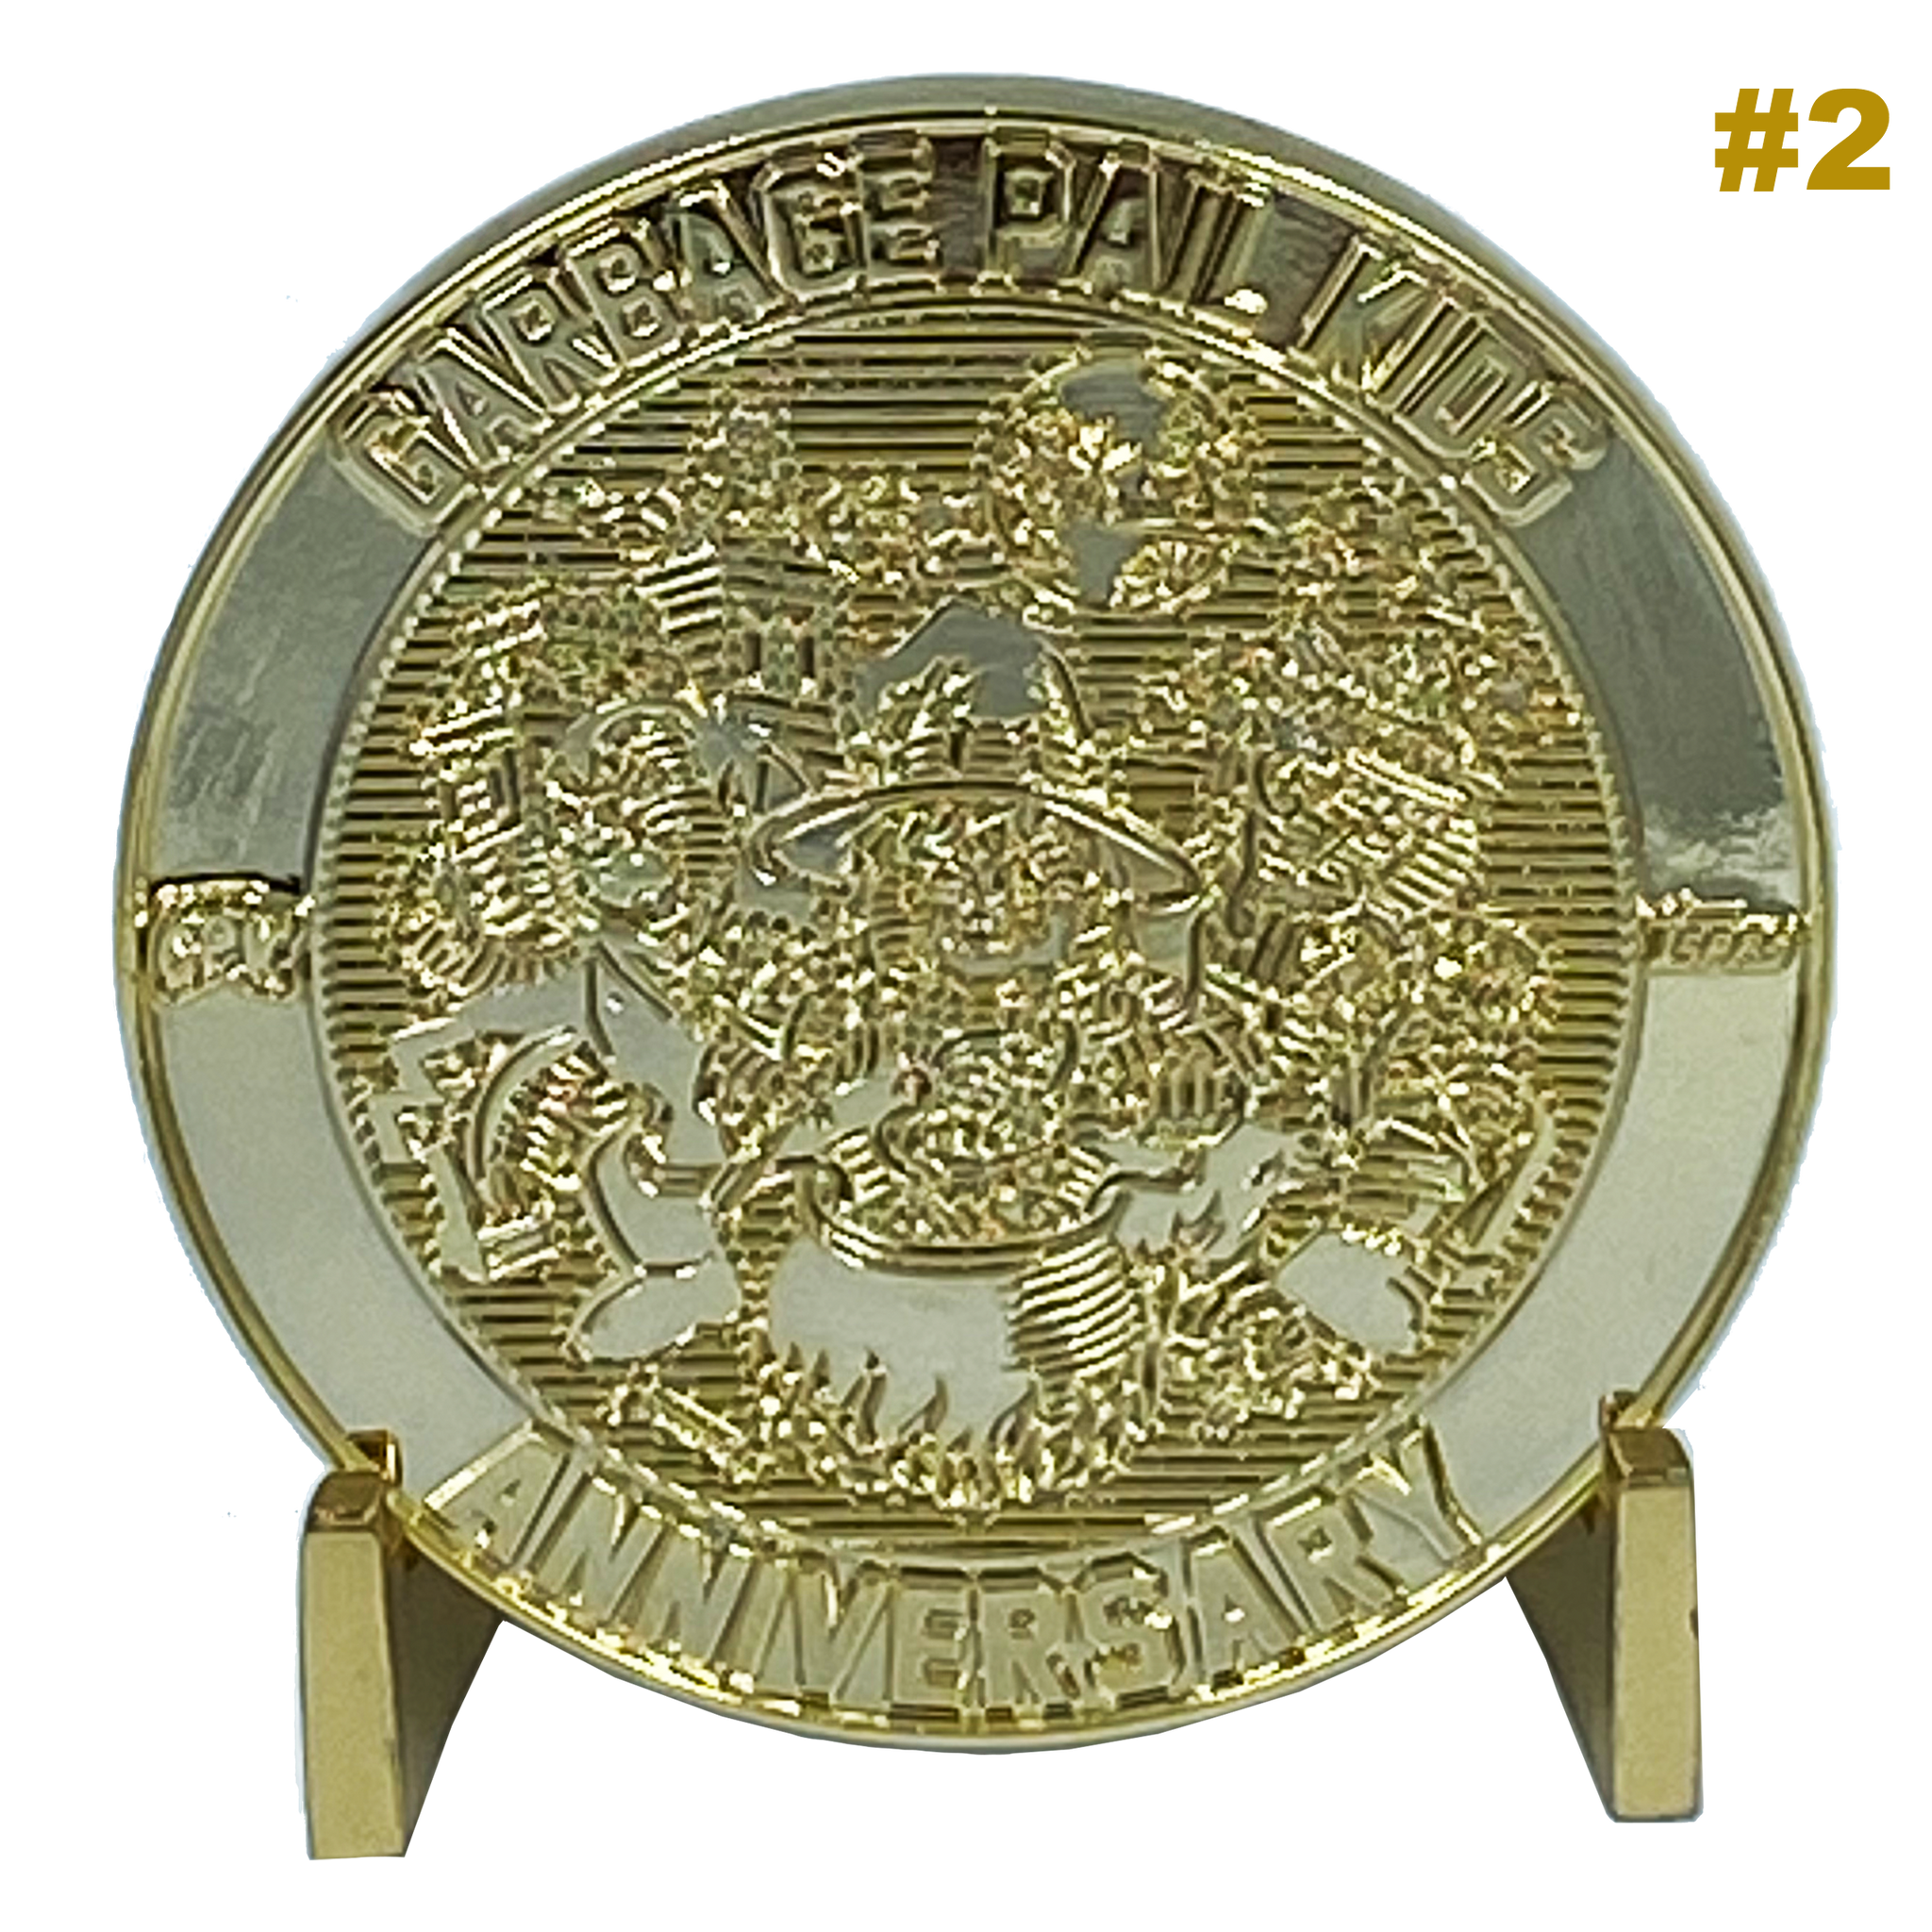 GPK 24KT Gold Plated Topps Officially Licensed Challenge Coin #2